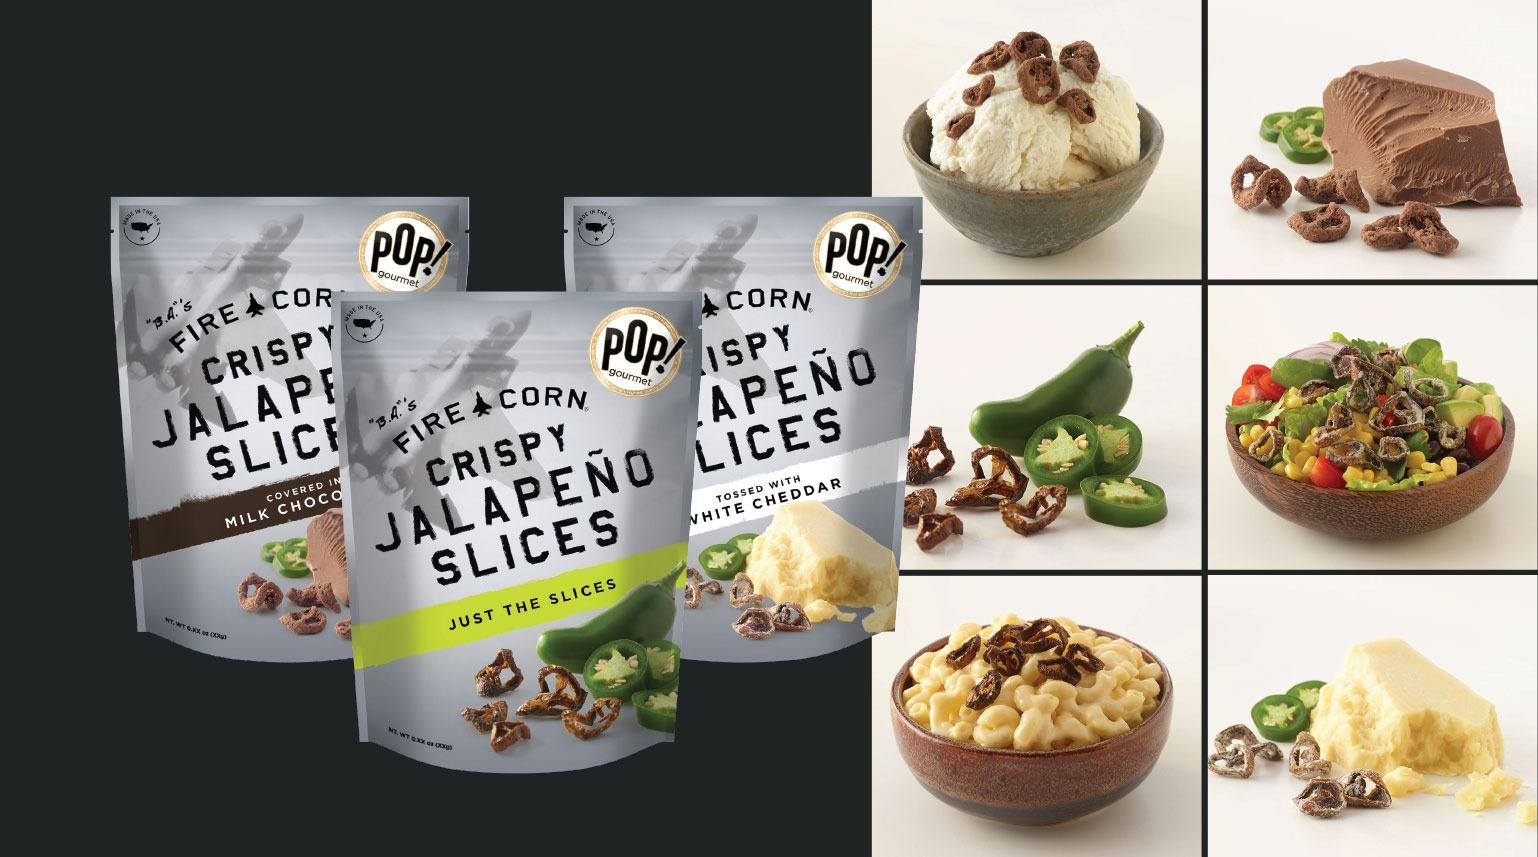 Three bags of jalapeno slices packages with images of food